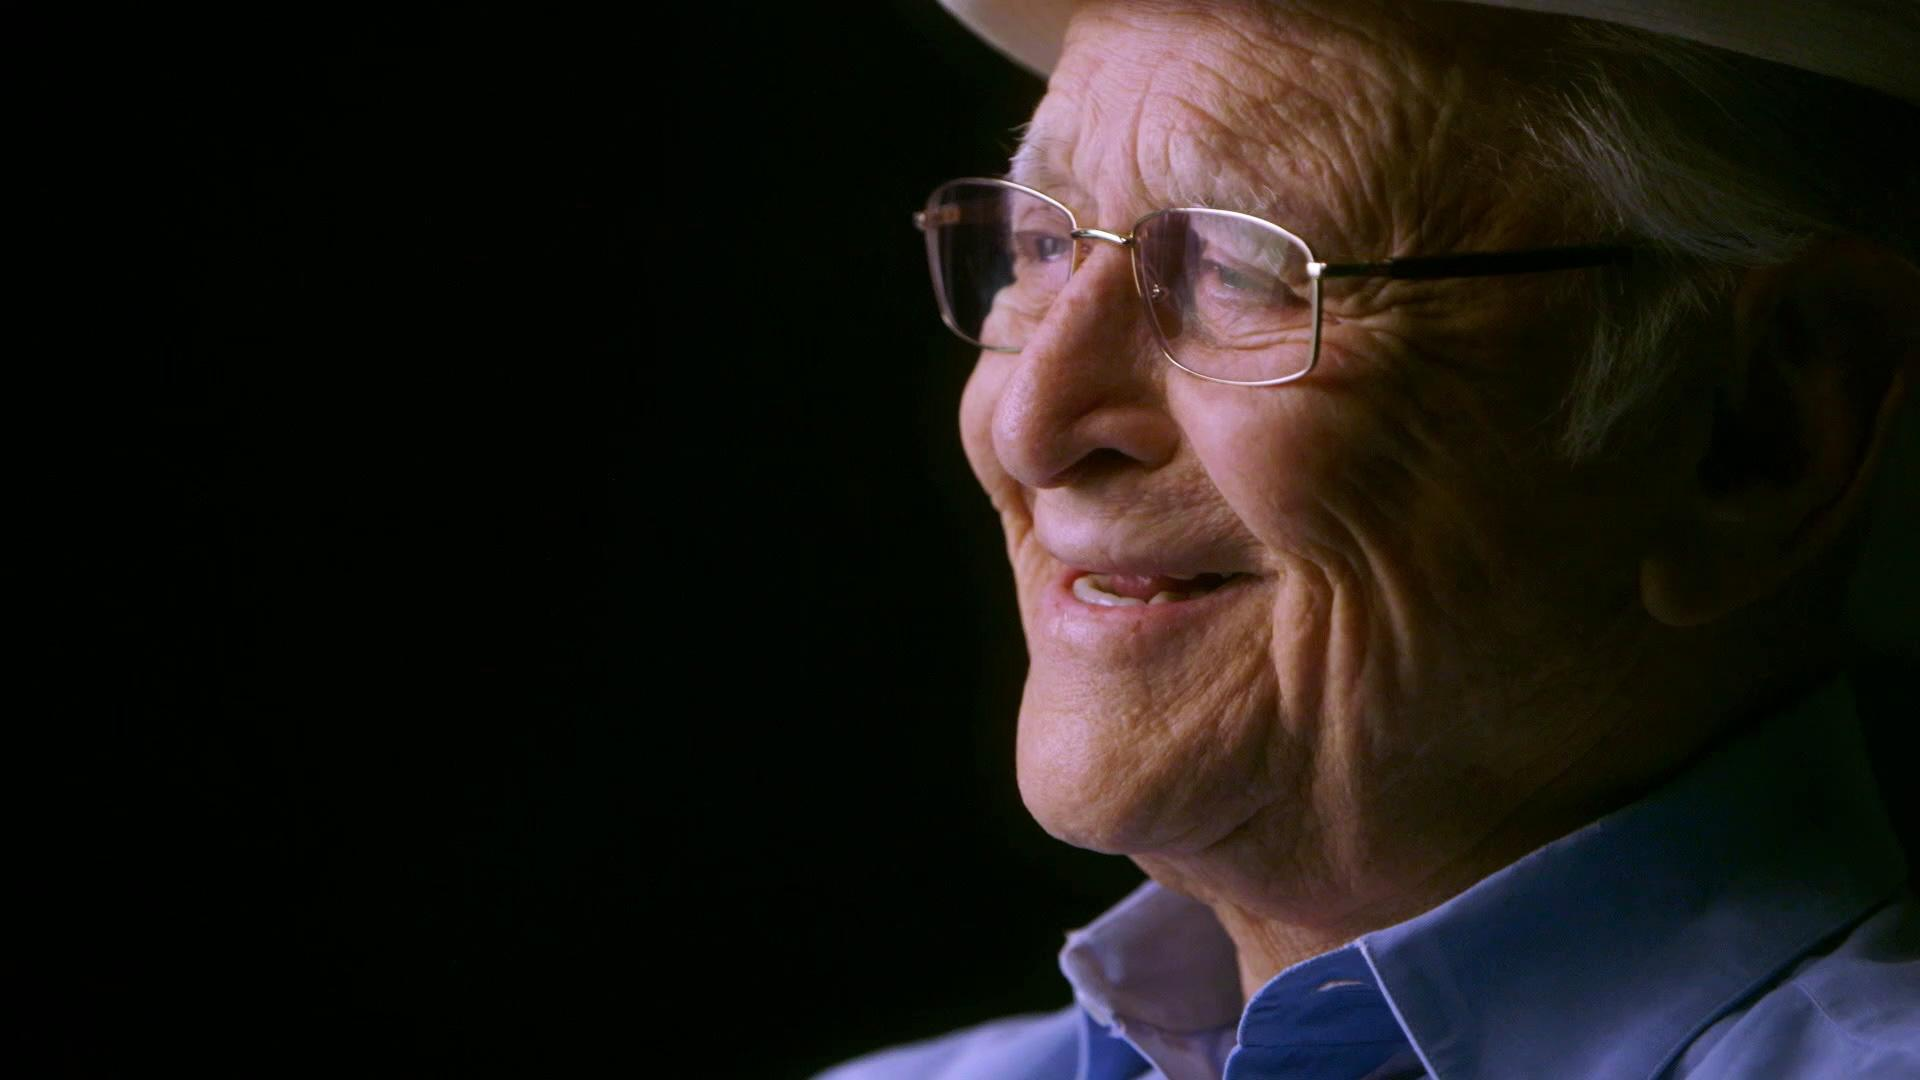 Norman Lear: Just Another Version of You - Trailer